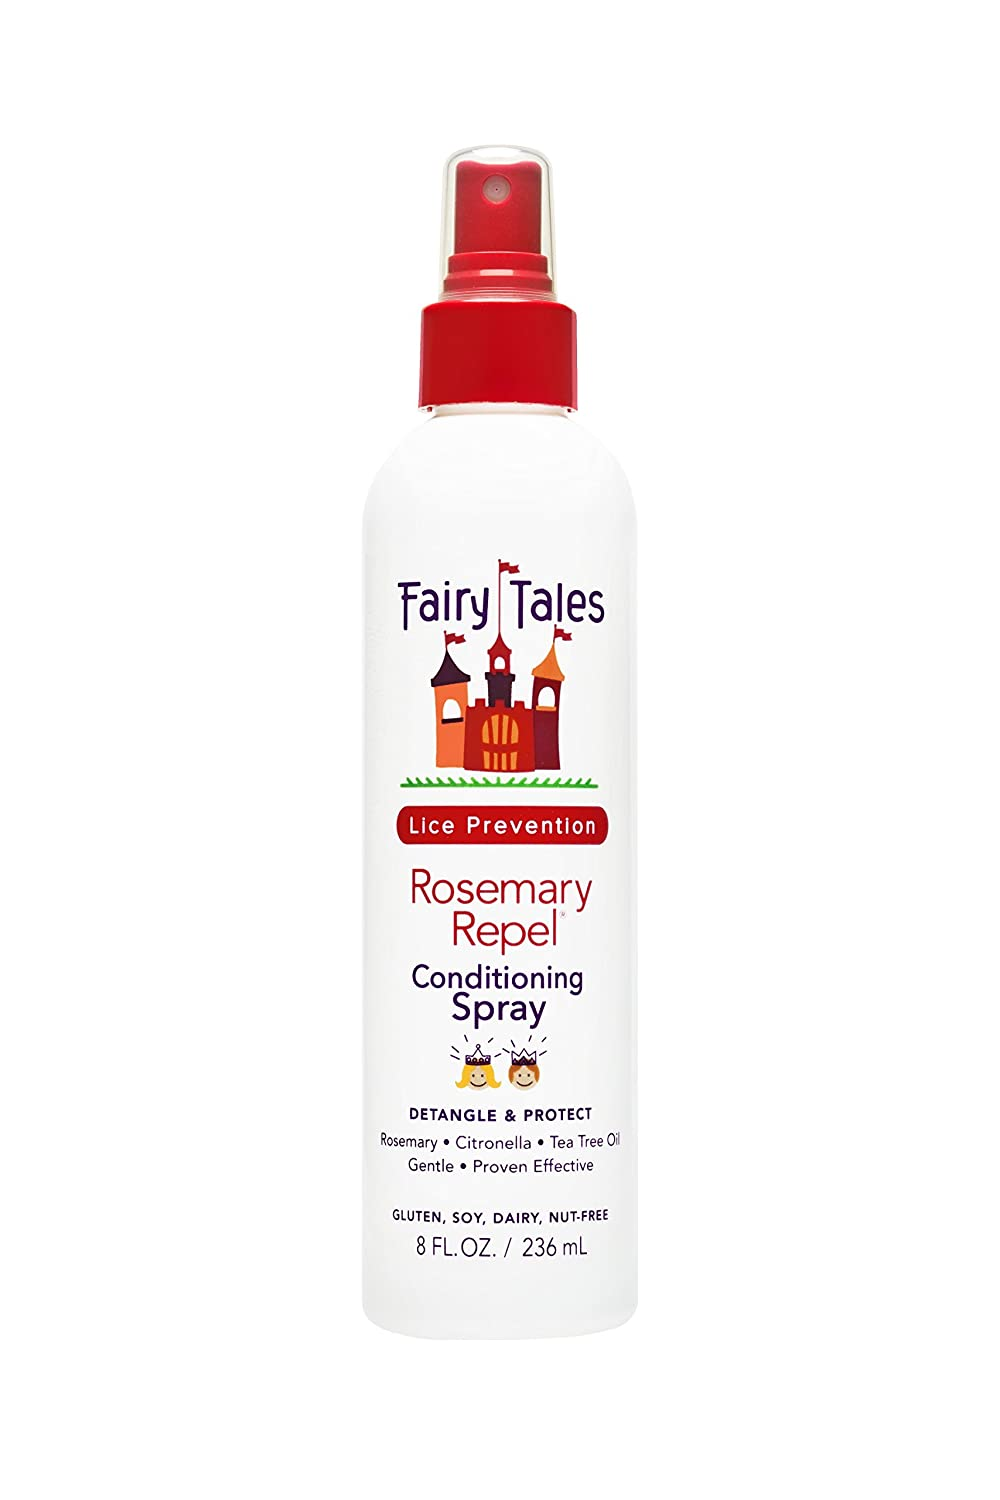 Fairy Tales Rosemary Repel Leave-in Conditioning Spray 236 ml ROSELISP8